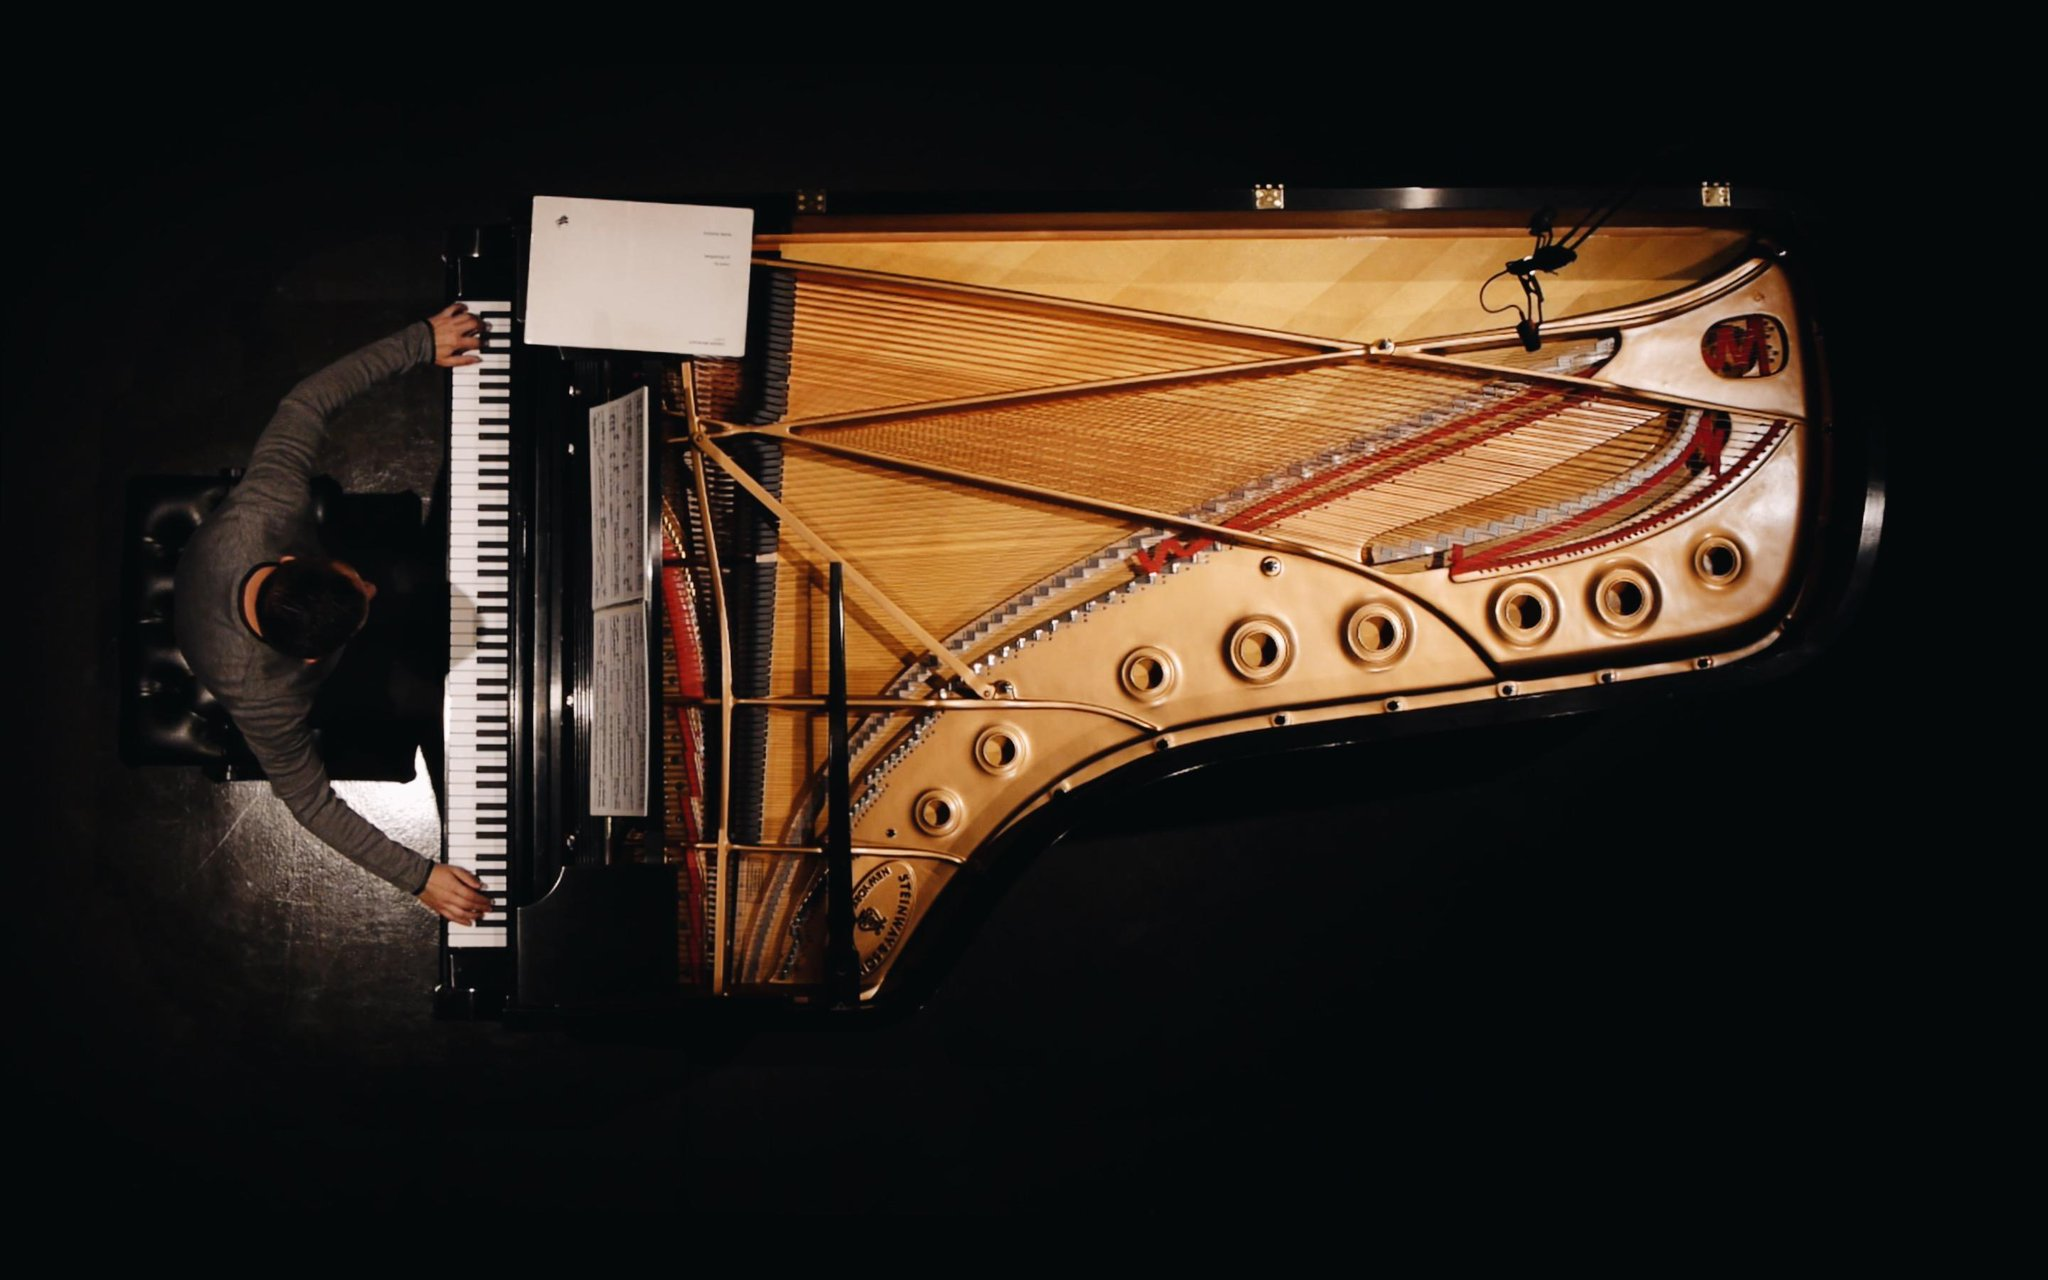 Reloaded twaddle – RT @SteinwayAndSons: Piano is unique in that way: it can be both percussive and...